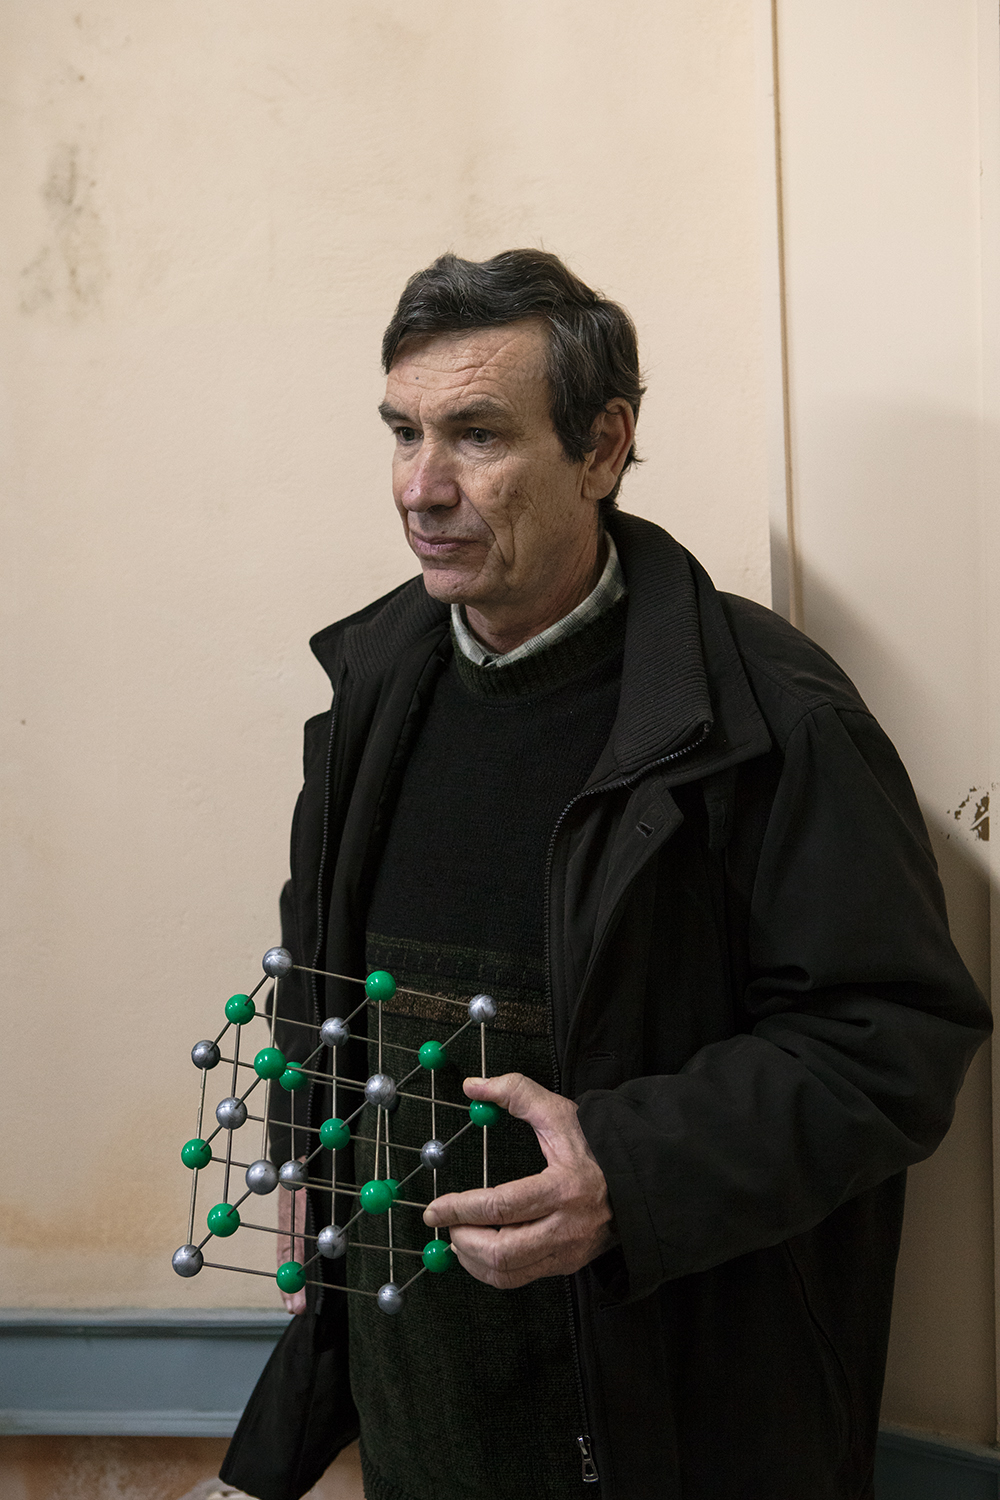 Physics teacher holding a model of crystal salt. A large part of the school environment has been formed by people deeply devoted to their profession, almost like having a love affair with their job.